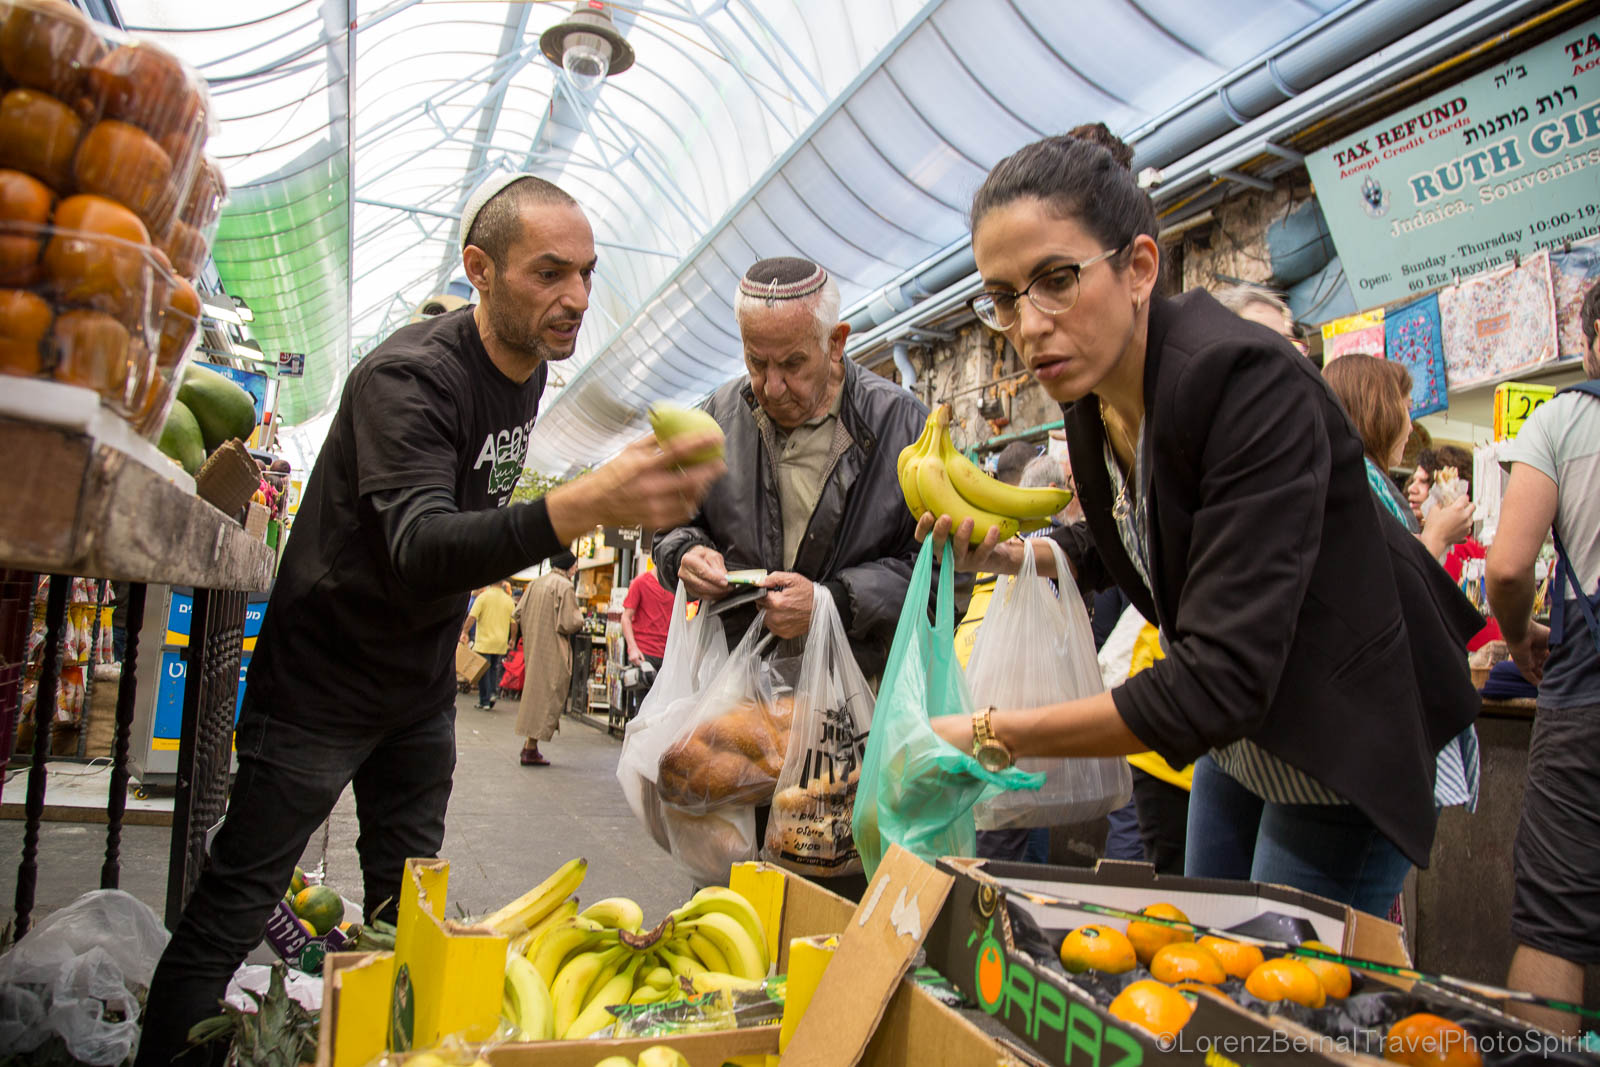 Local people buying fresh fruits in Mahane Yehuda Market, Jerusalem, Israel.